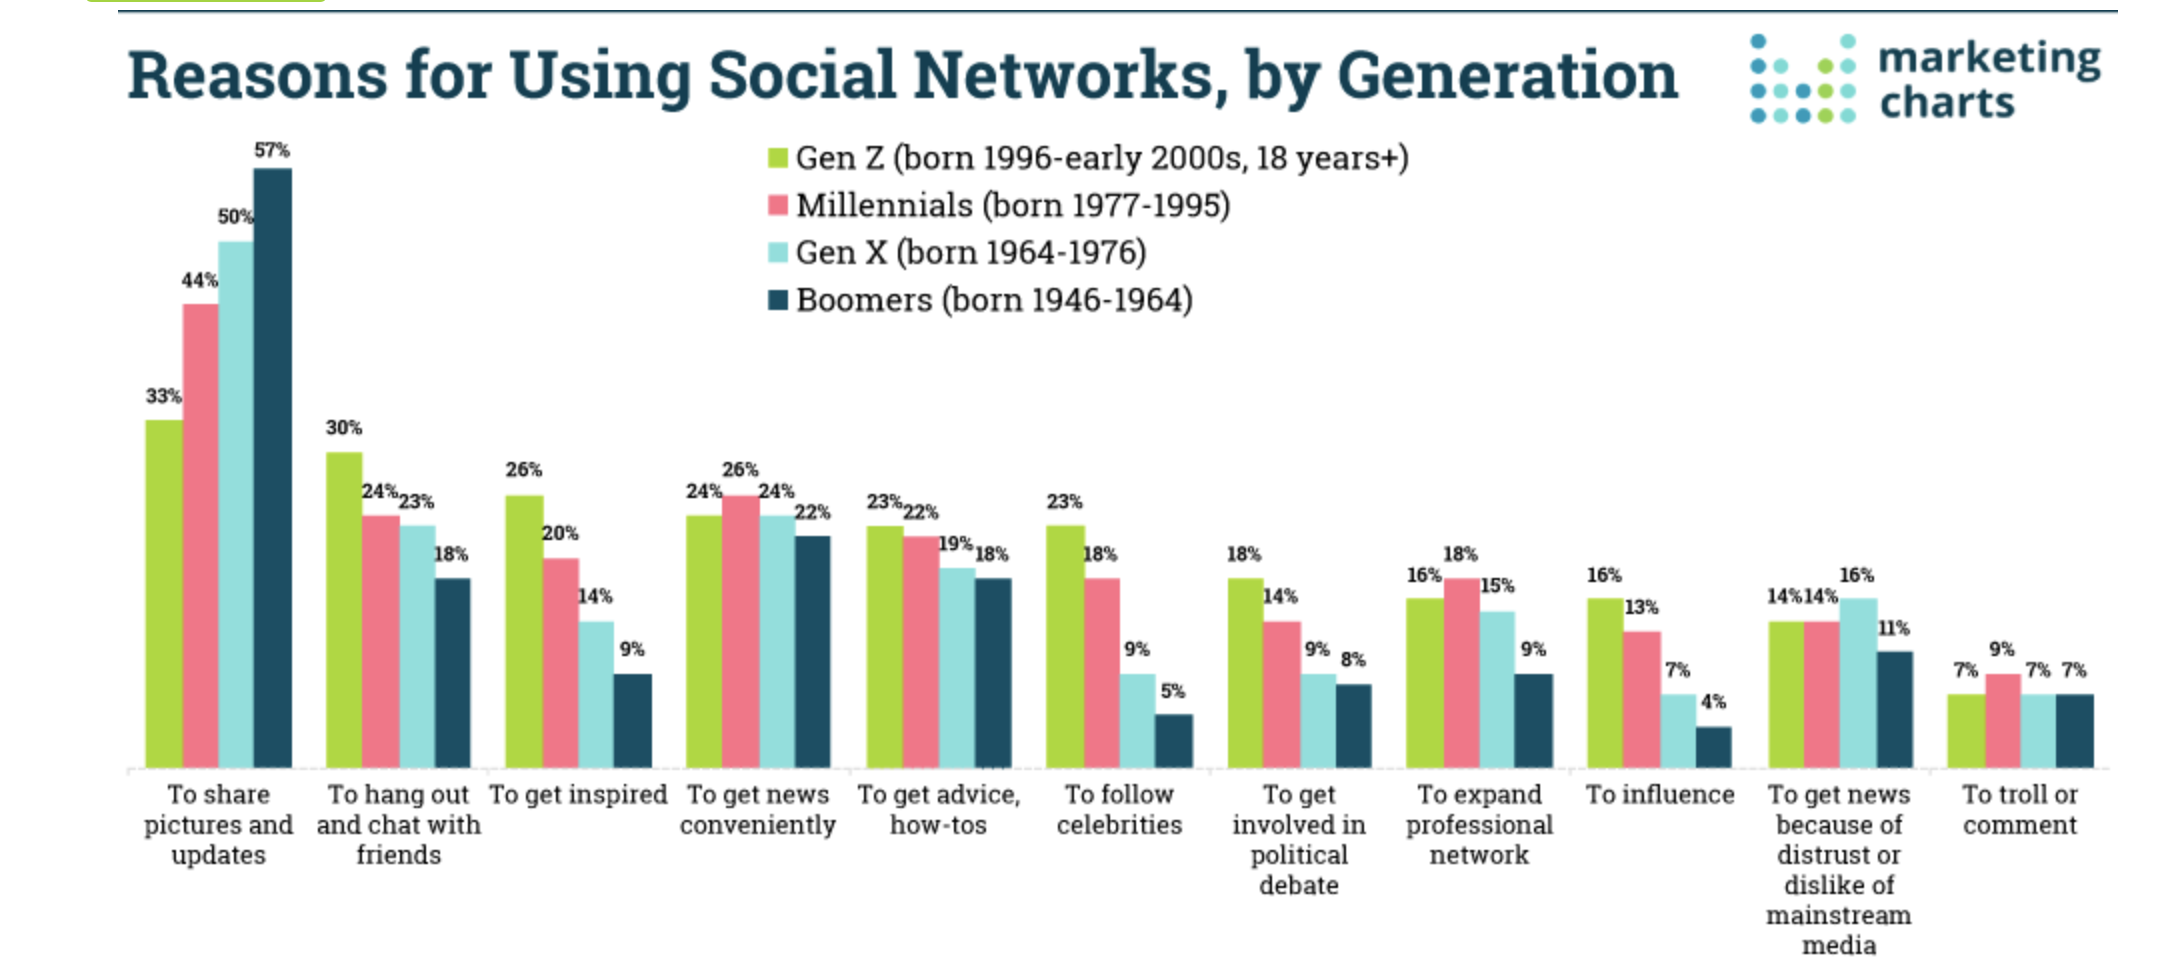 reasons for using social networks by generation